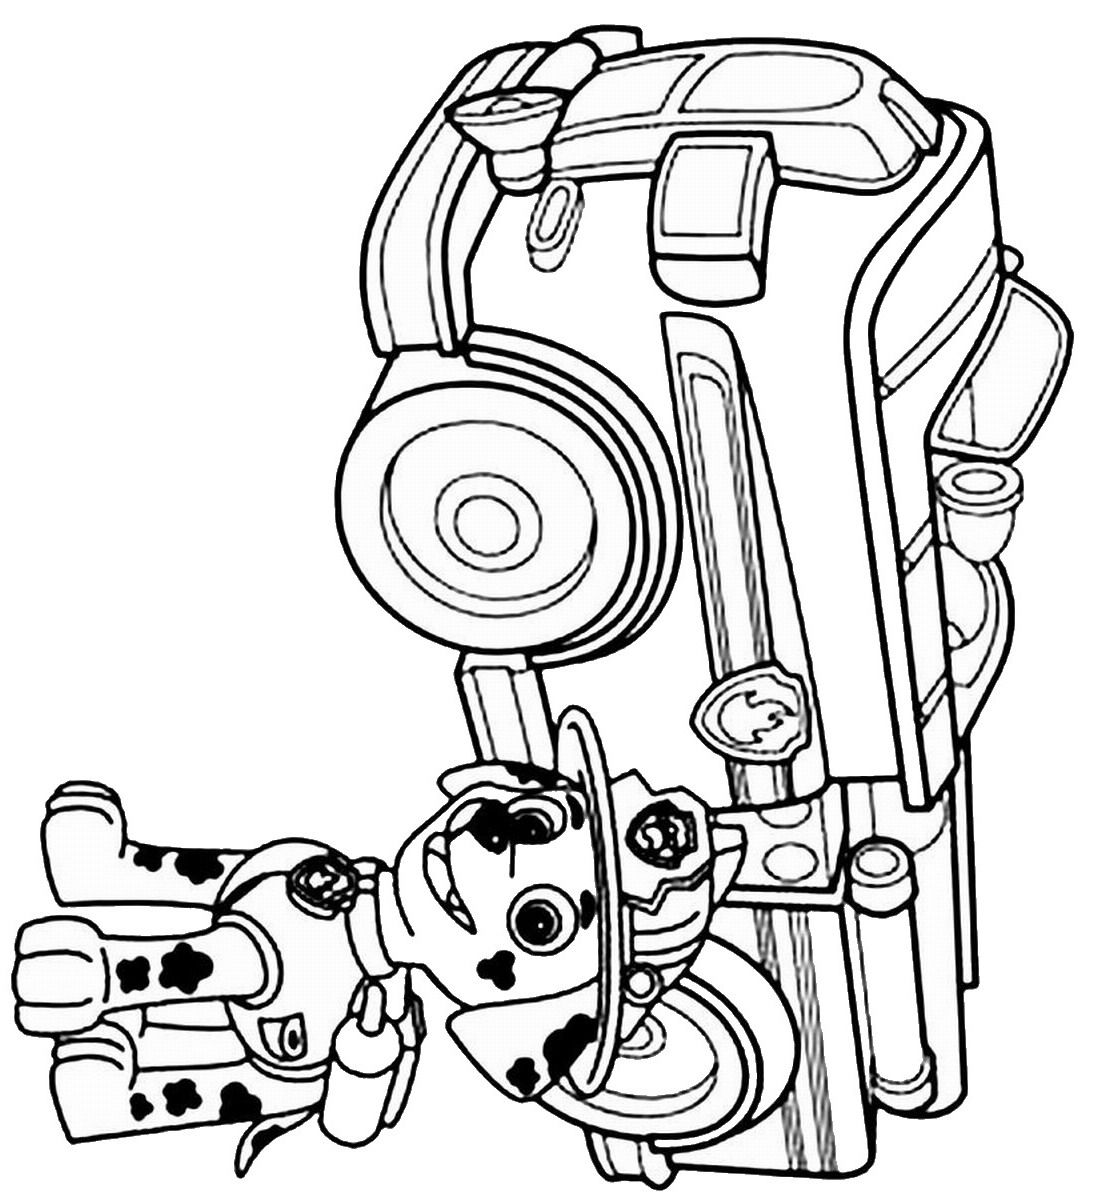 Coloring pages of chase from paw patrol - Marshall With His Firetruck Coloring Page Paw Patrol